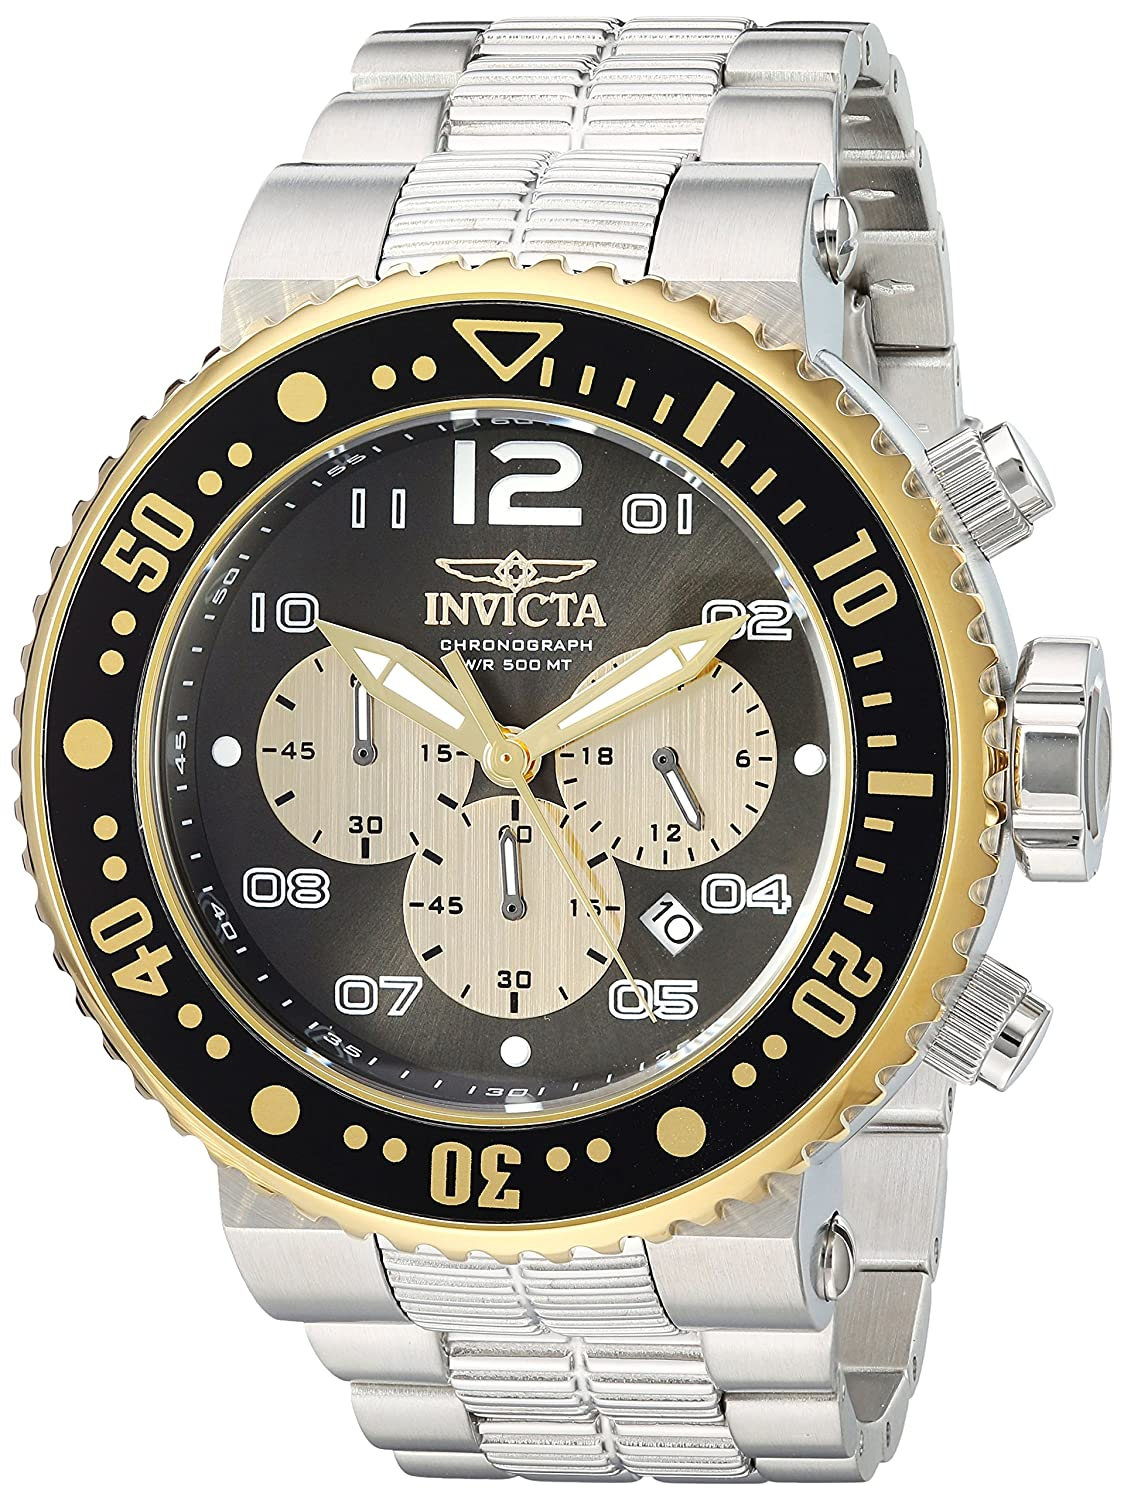 Invicta Men s Pro Diver Quartz Watch with Stainless-Steel Strap, Silver, 22 Model 25075